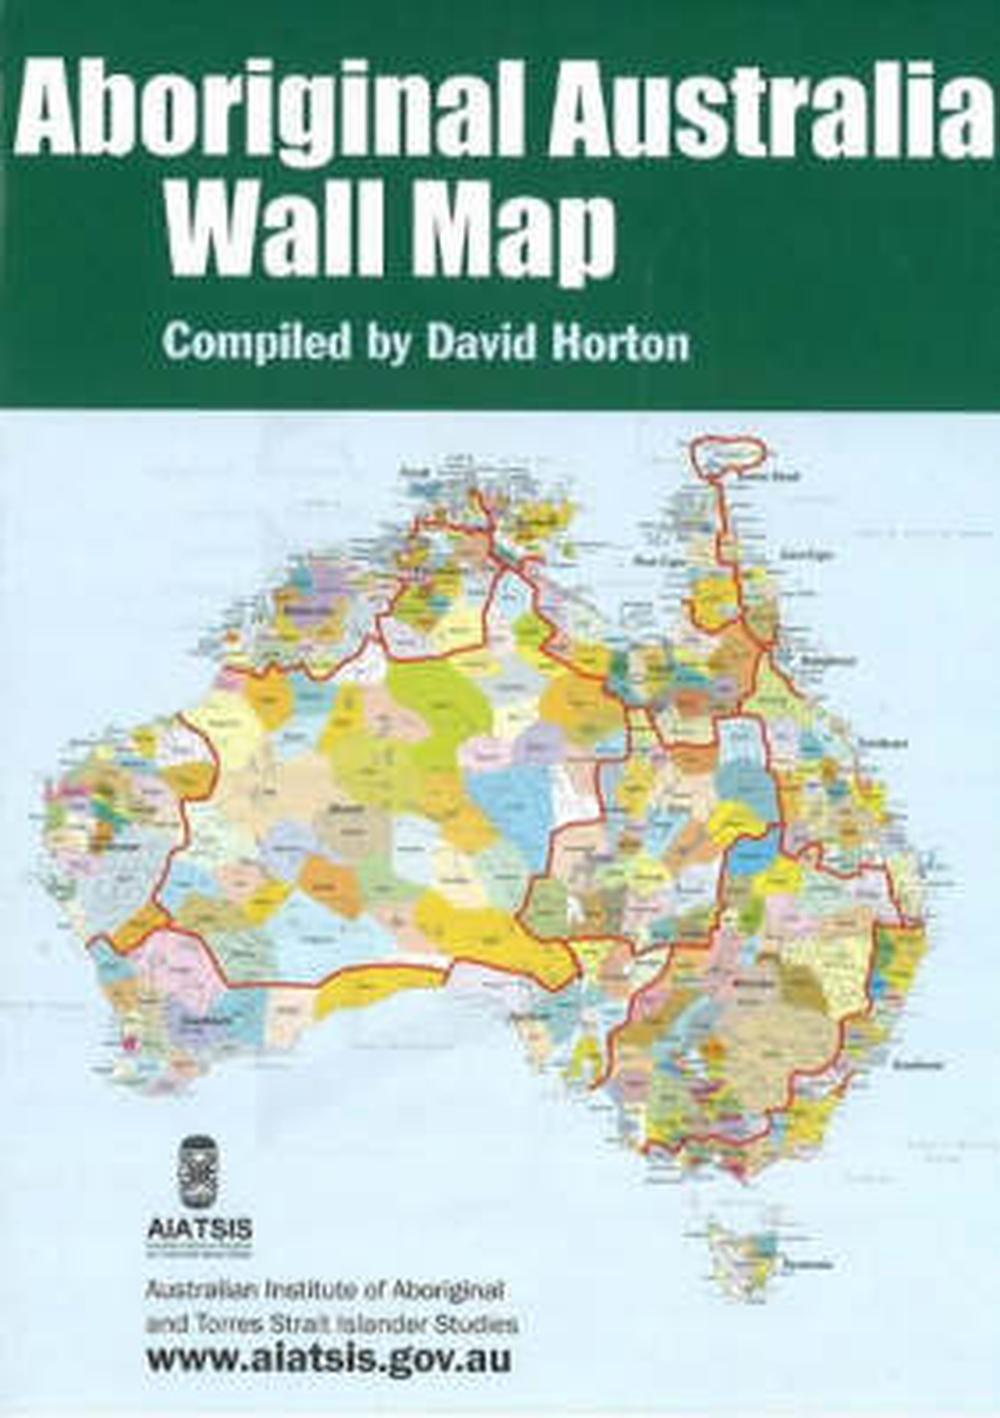 Buy Map Of Australia.Aboriginal Australia Wall Map By David Horton Paperback